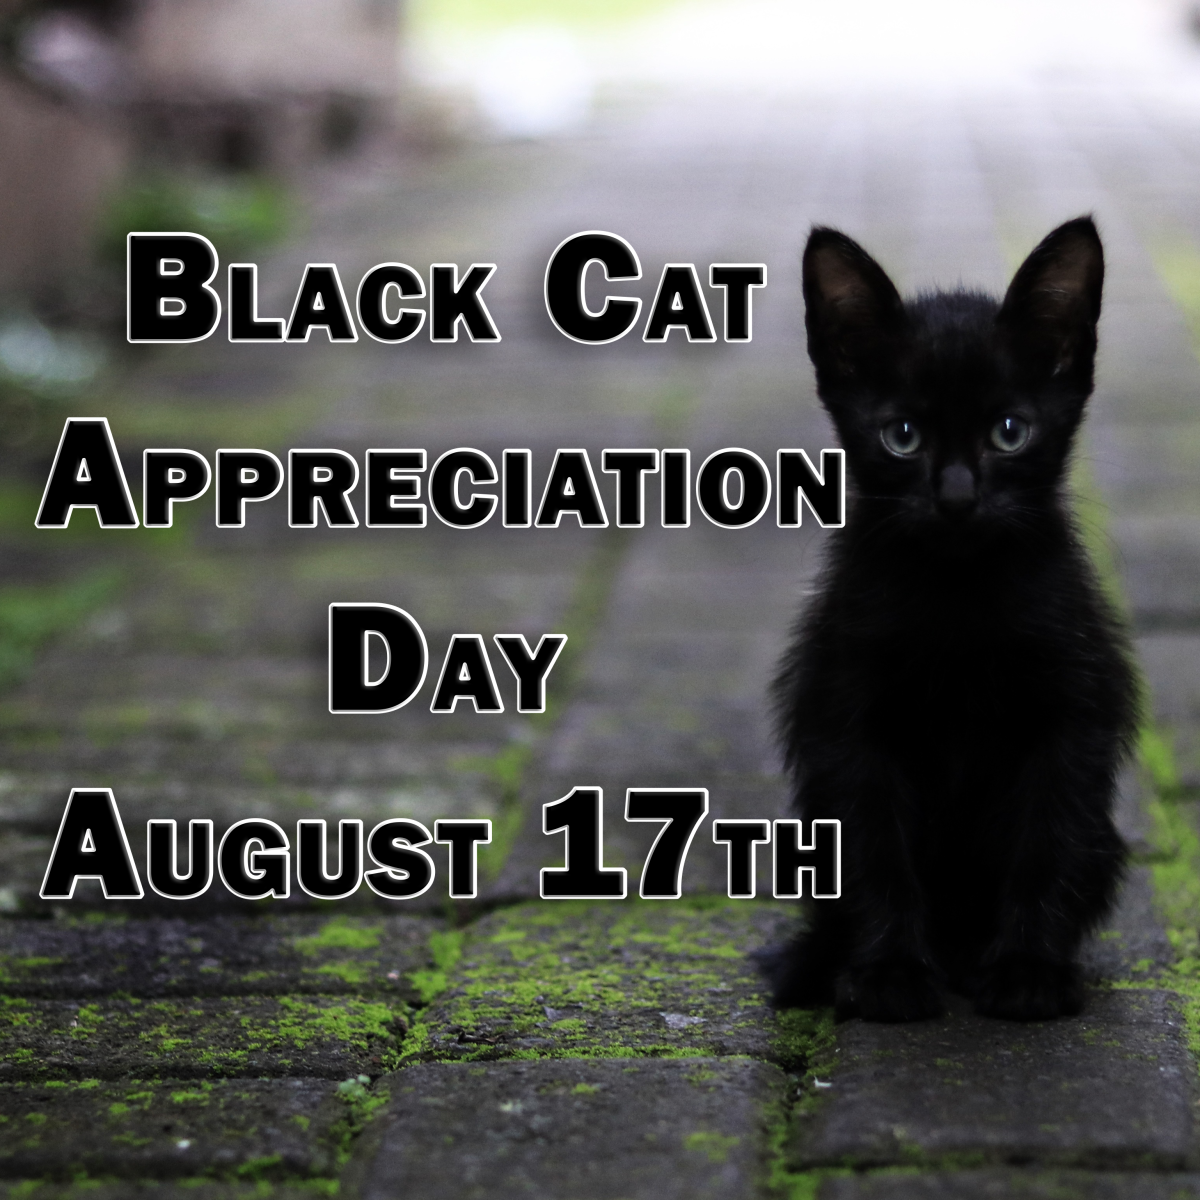 Black Cat Appreciation Day is celebrated on August 17th.